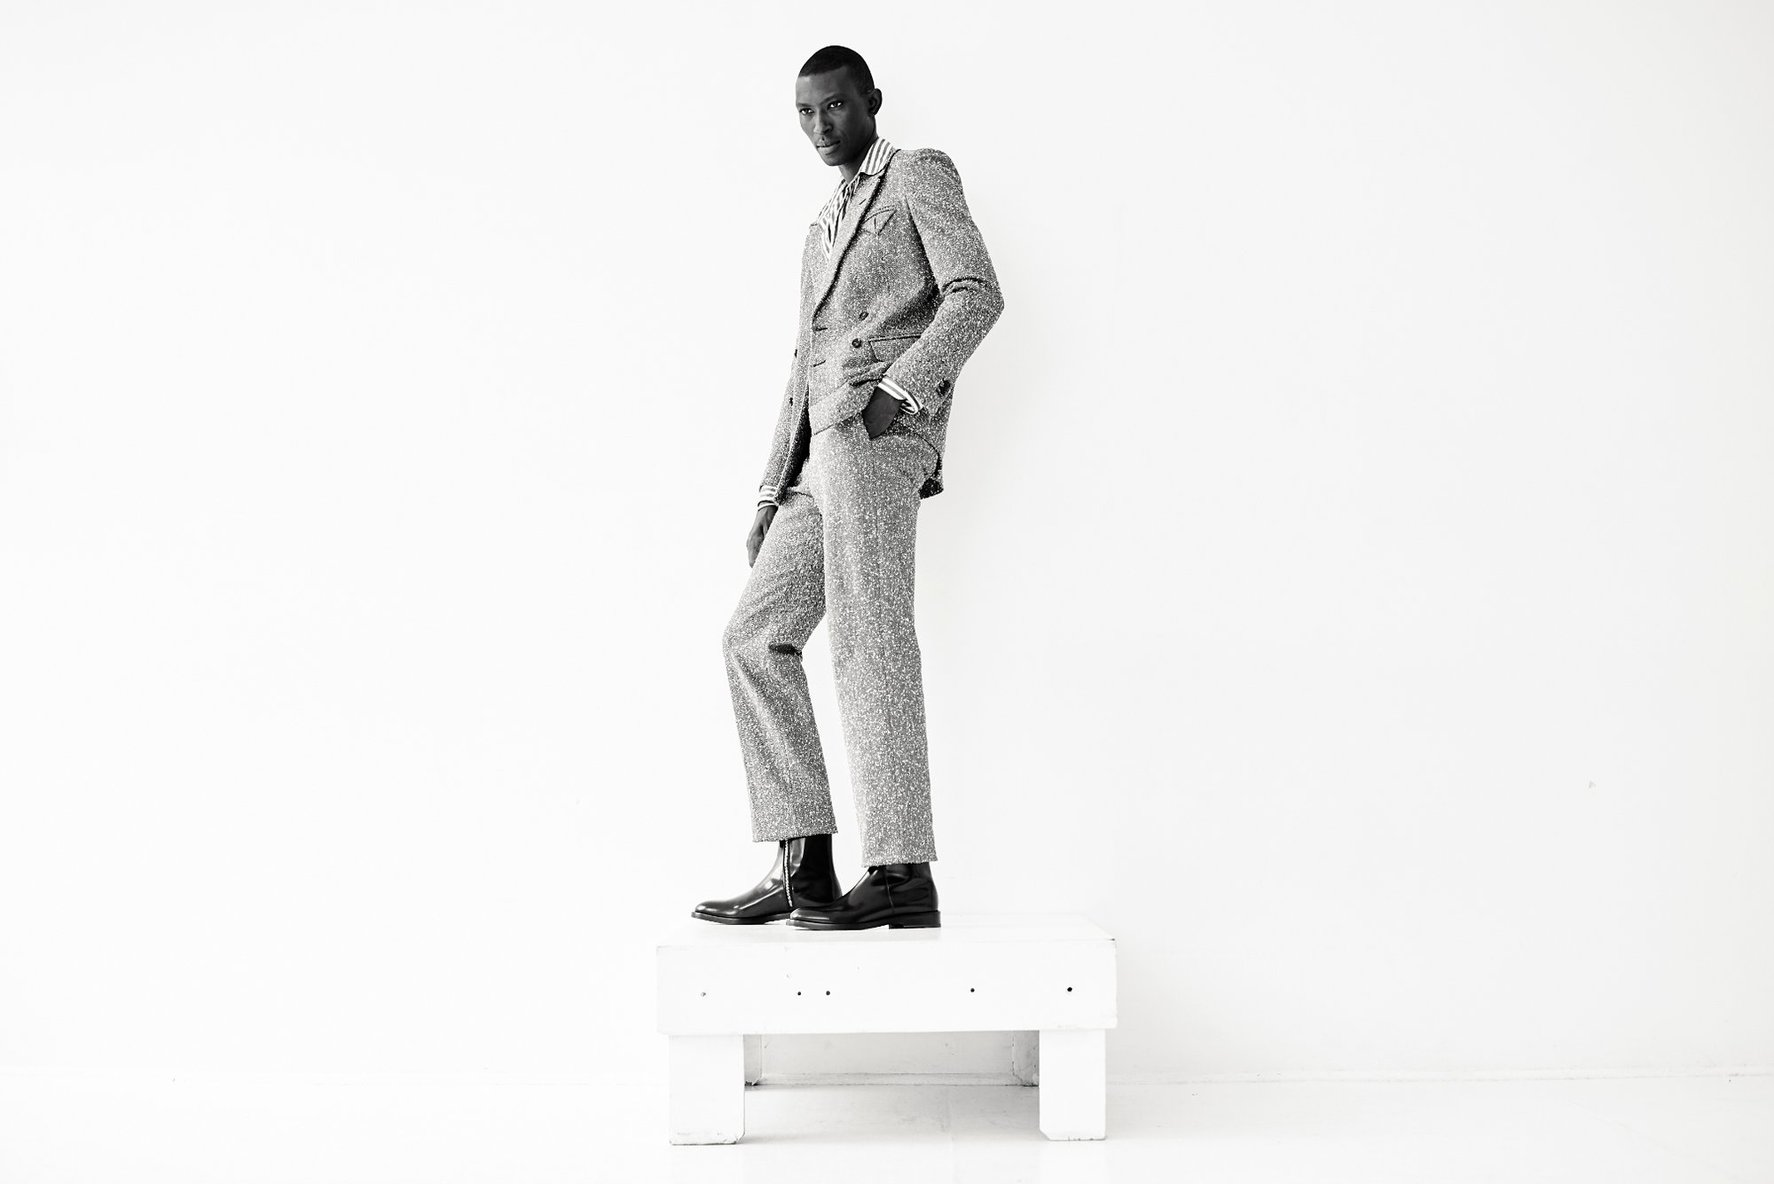 Icon Armando Cabral Puts His Best Foot Forward for Charity